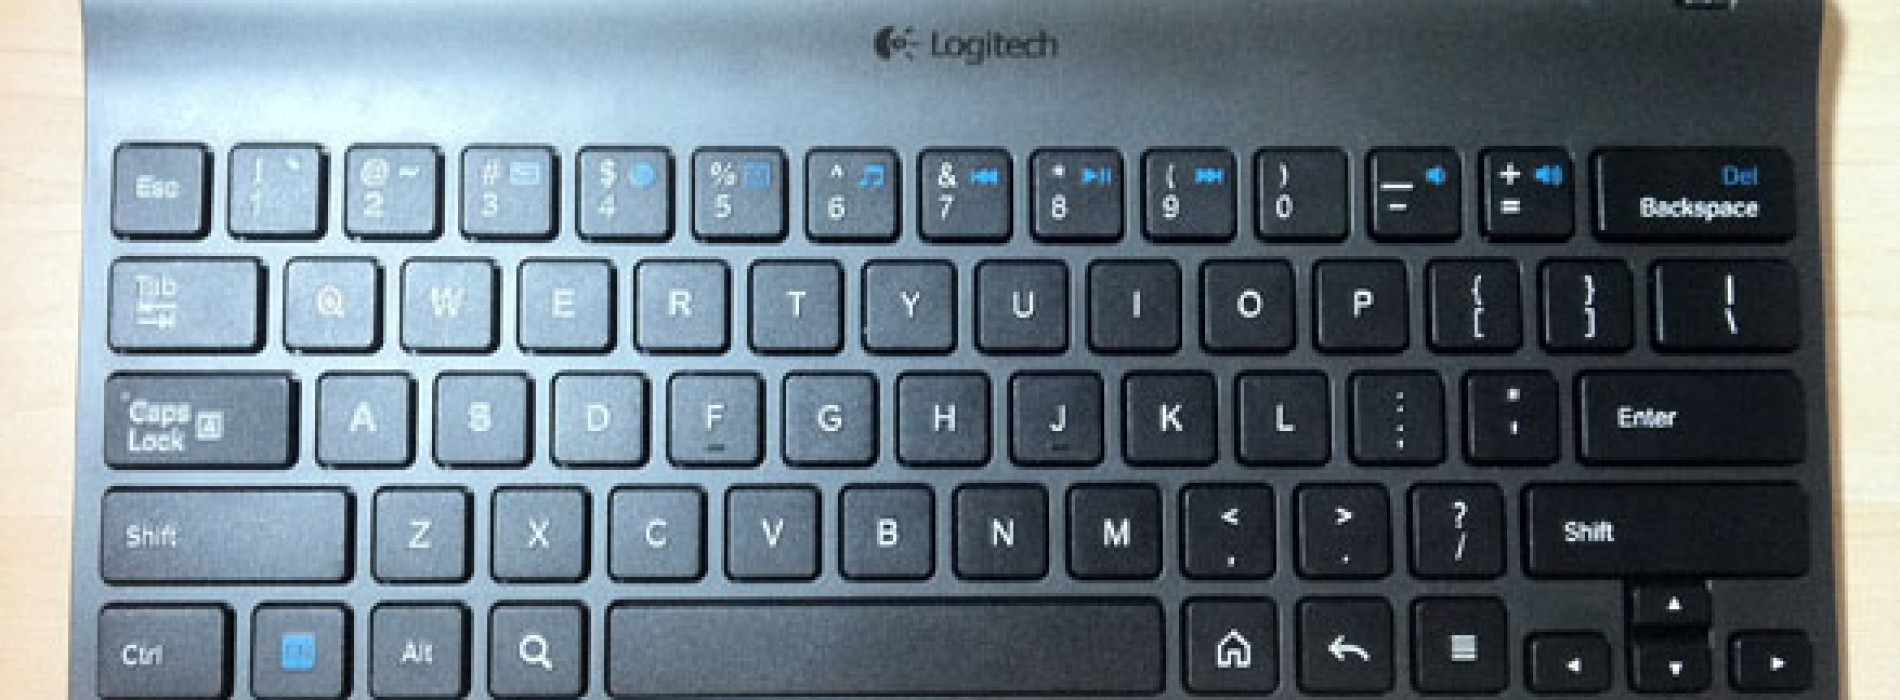 Logitech Bluetooth Keyboard for Android 3.0+ [Review]